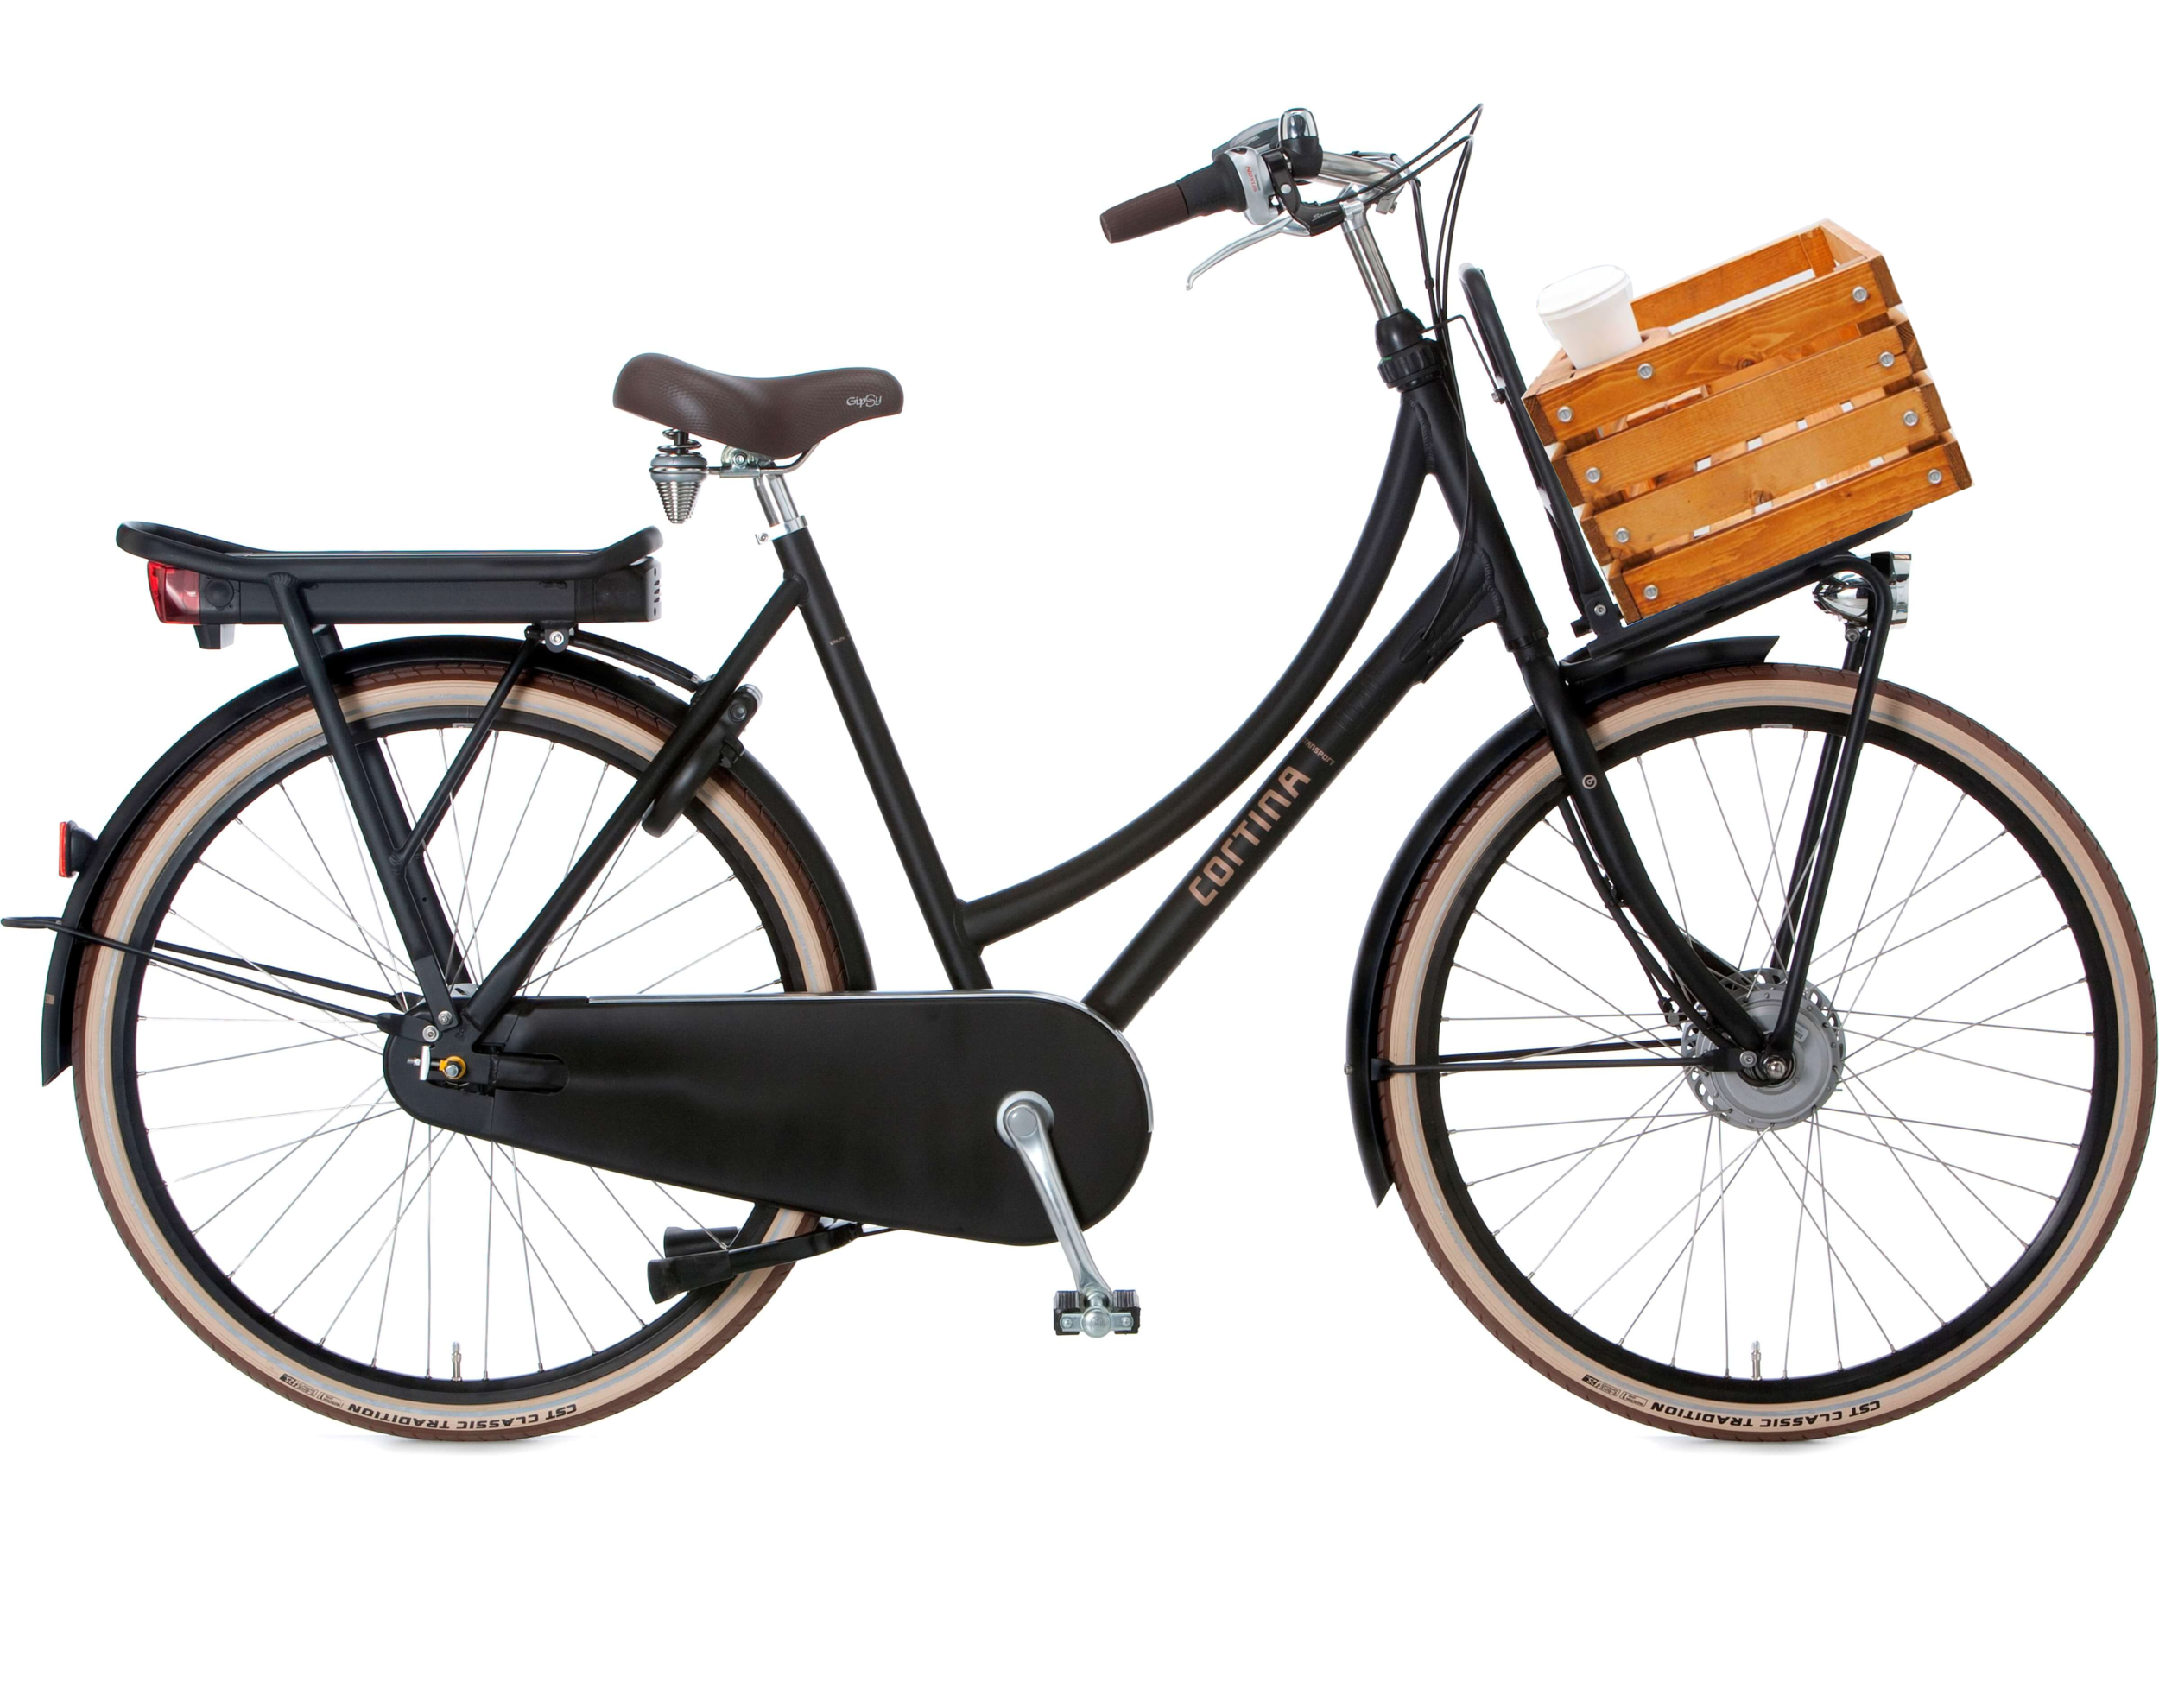 The stylish electric bicycle is not an unreachable dream anymore! - Experience the comfort of cycling without breaking a sweat!